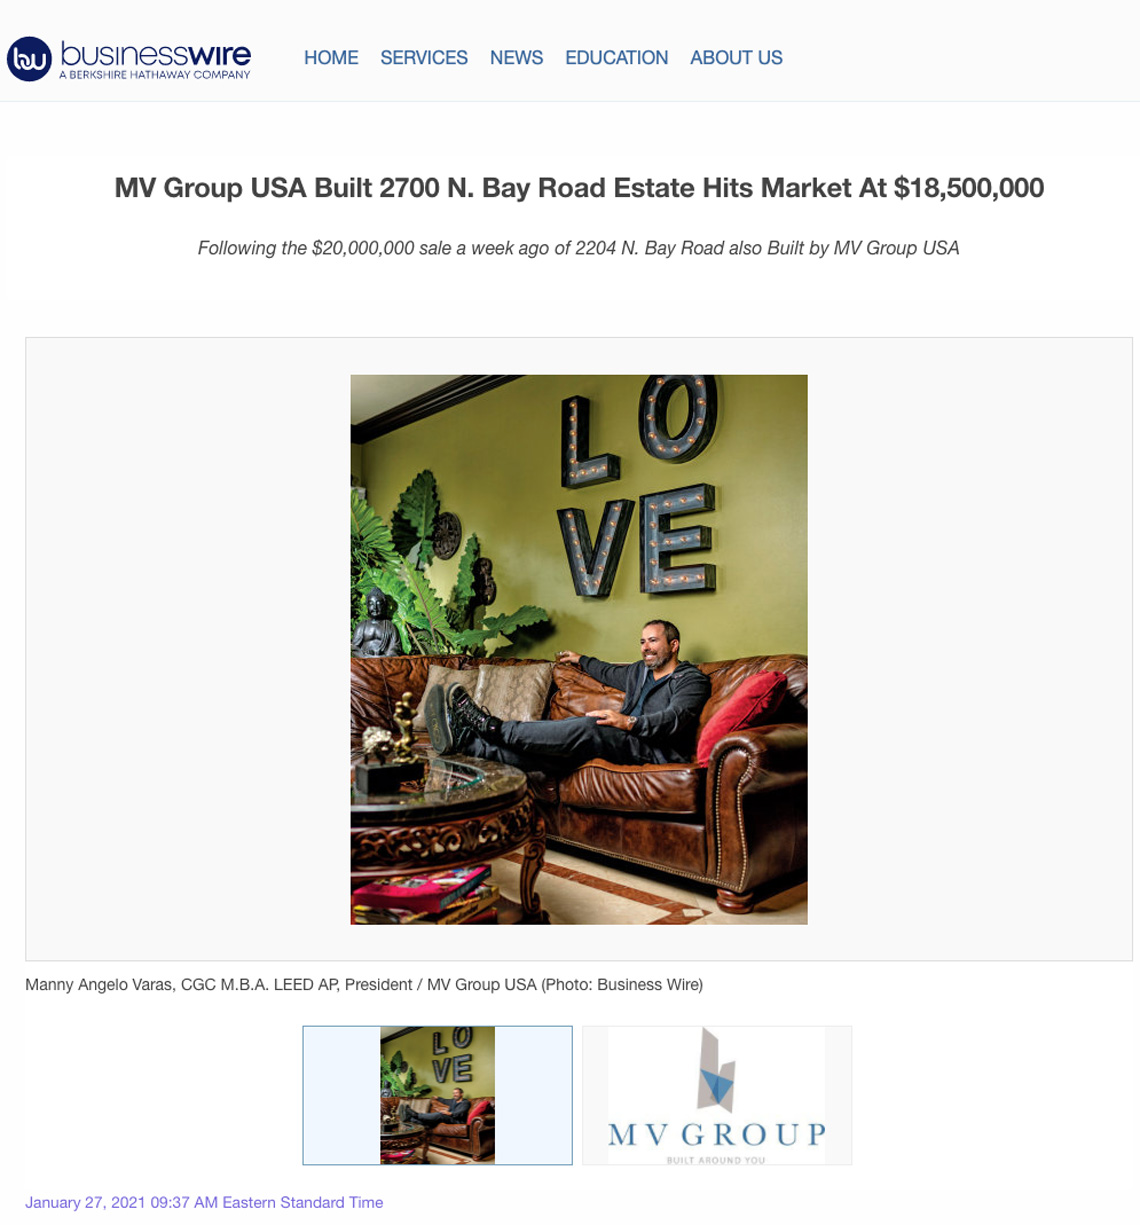 Businesswire – MV Group Usa Built 2700 N. Bay Road Estate Hits Market at $18,500,000